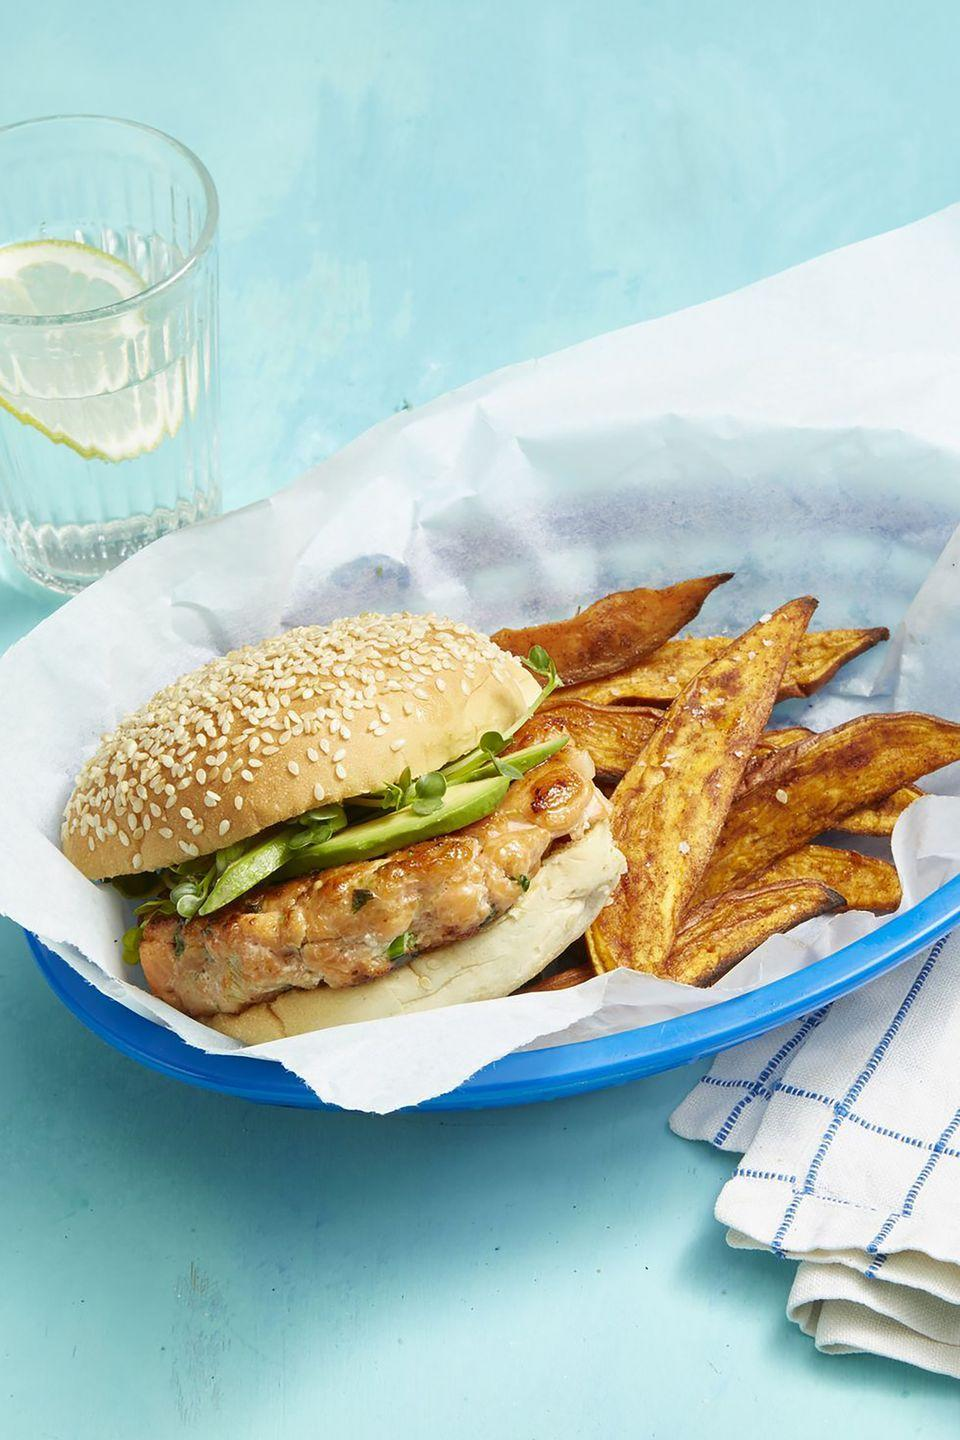 """<p>This fresh twist on classic burgers and fries is a pescetarian's dream. </p><p><u><em><strong><a href=""""https://www.womansday.com/food-recipes/food-drinks/a21053153/salmon-burgers-and-five-spice-sweet-potato-fries-recipe/"""" rel=""""nofollow noopener"""" target=""""_blank"""" data-ylk=""""slk:Get the recipe for Salmon Burgers and Five-Spice Sweet Potato Fries"""" class=""""link rapid-noclick-resp"""">Get the recipe for Salmon Burgers and Five-Spice Sweet Potato Fries</a>.</strong></em></u></p>"""